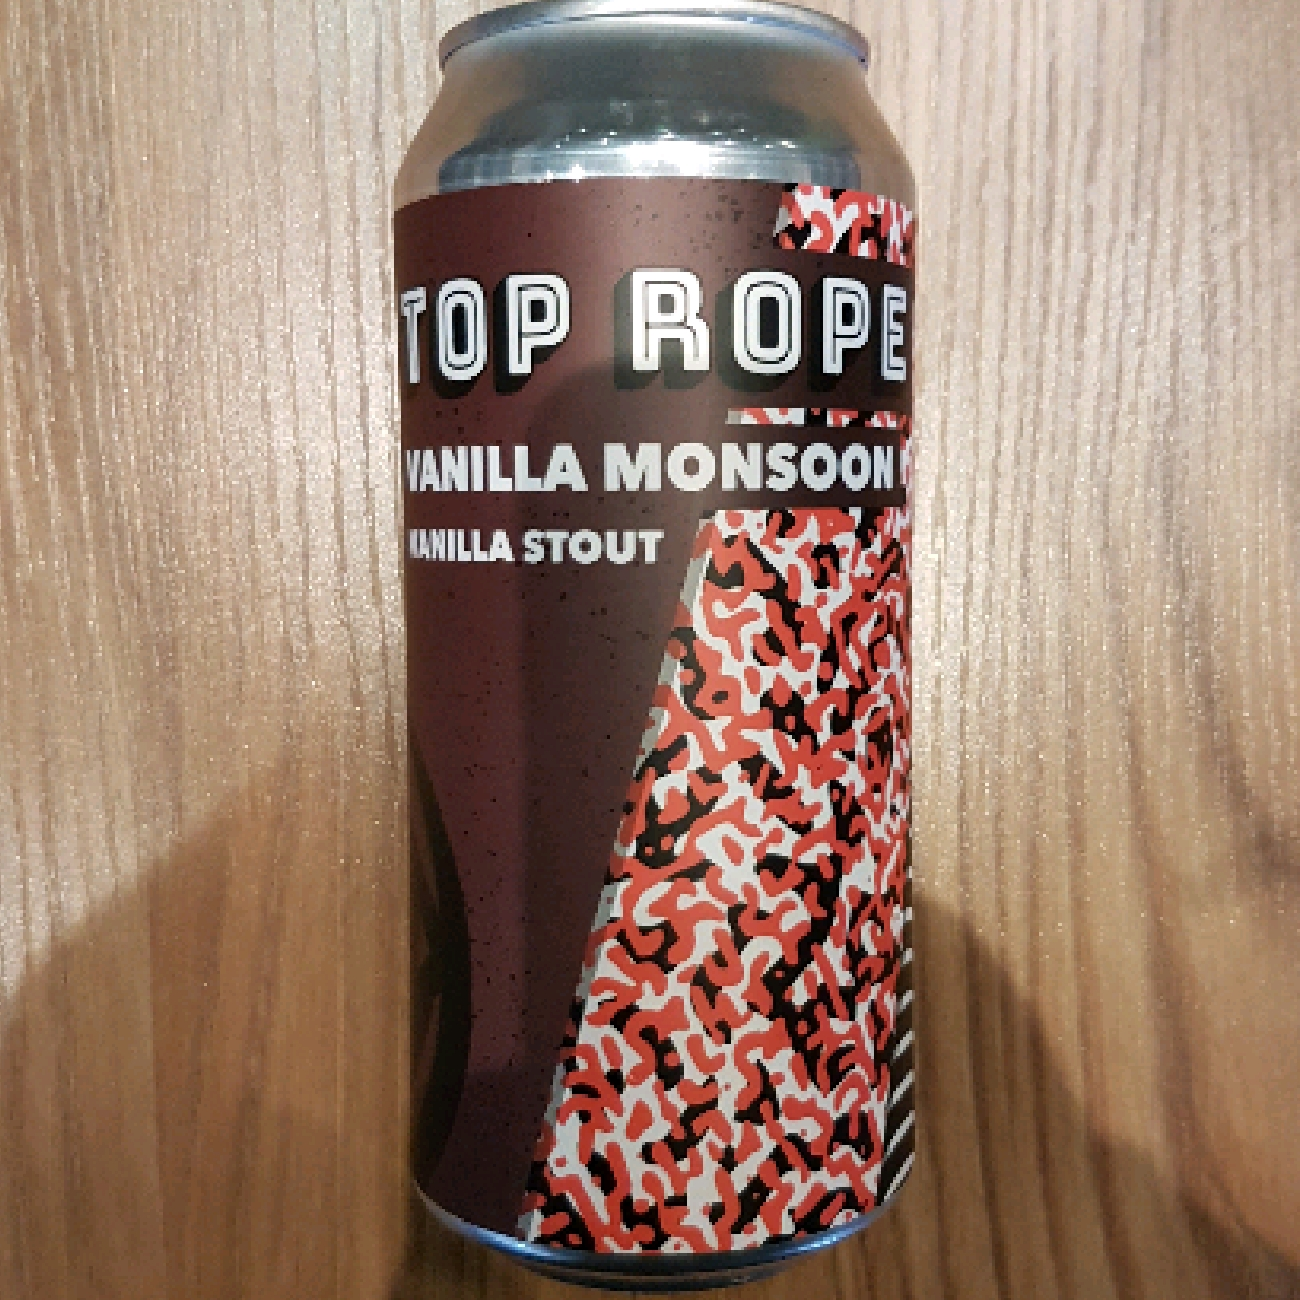 Top Rope Vanilla Monsoon